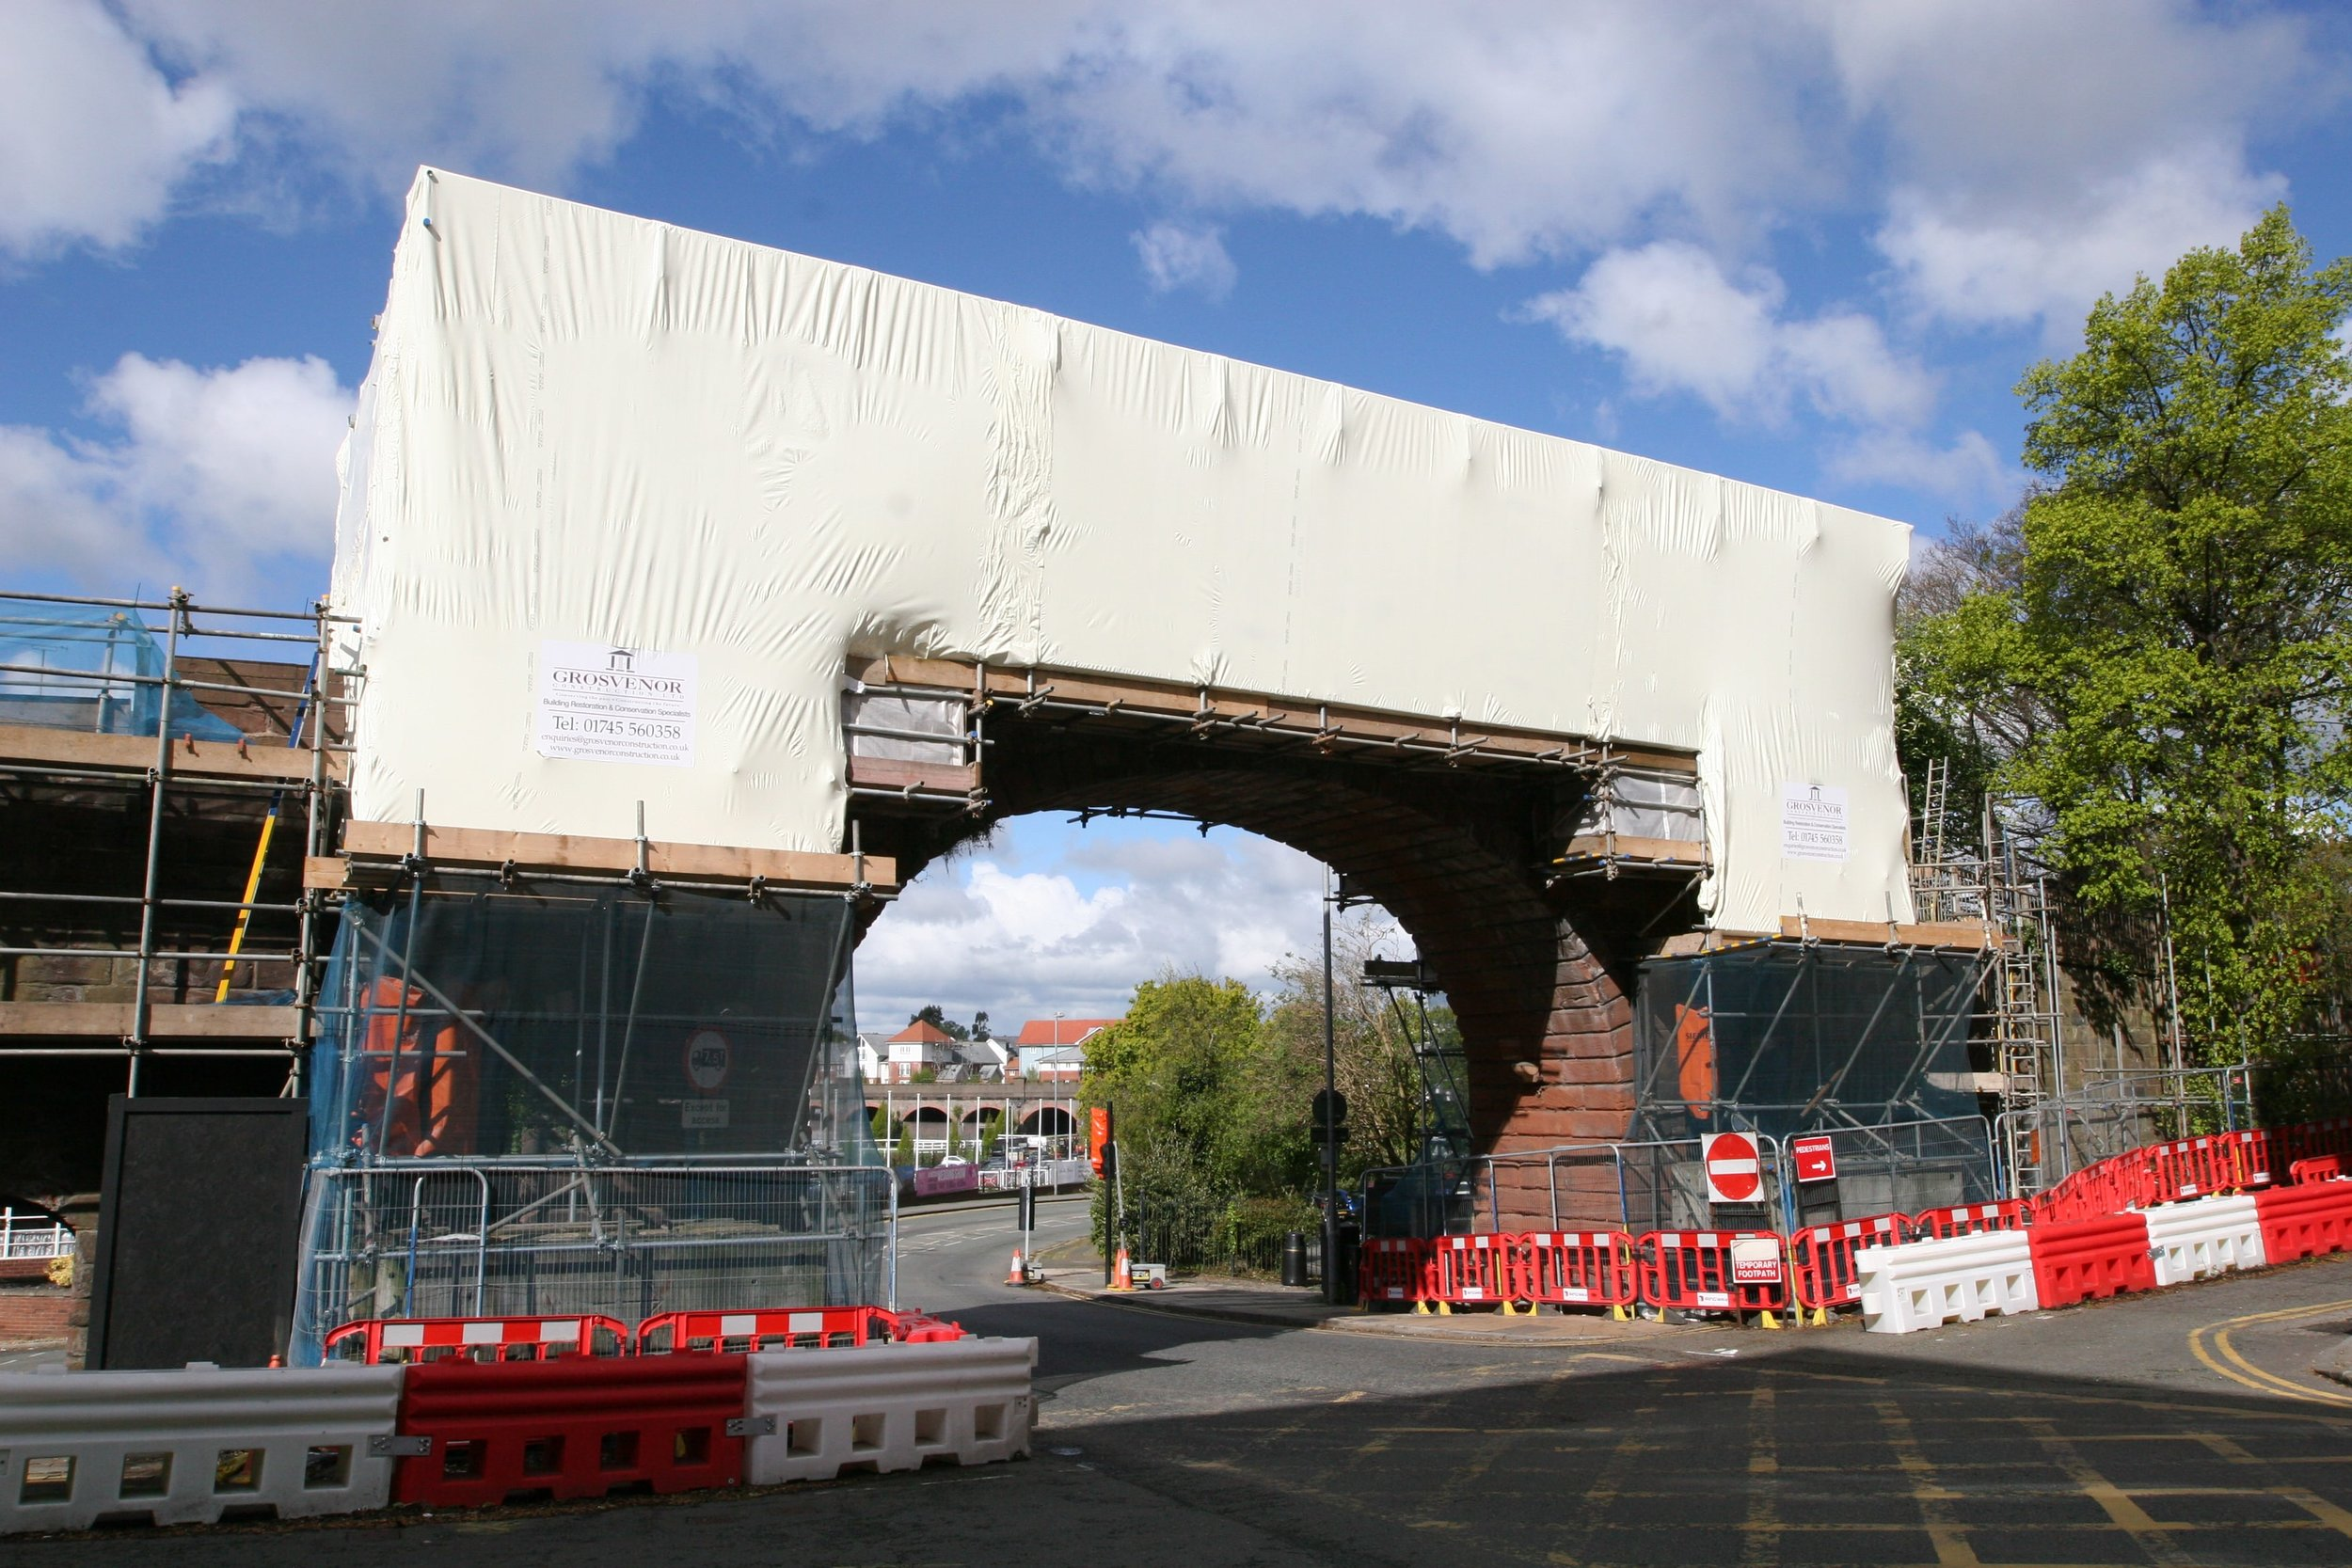 Temporary works for the restoration of Grade 1 listed structure in Chester